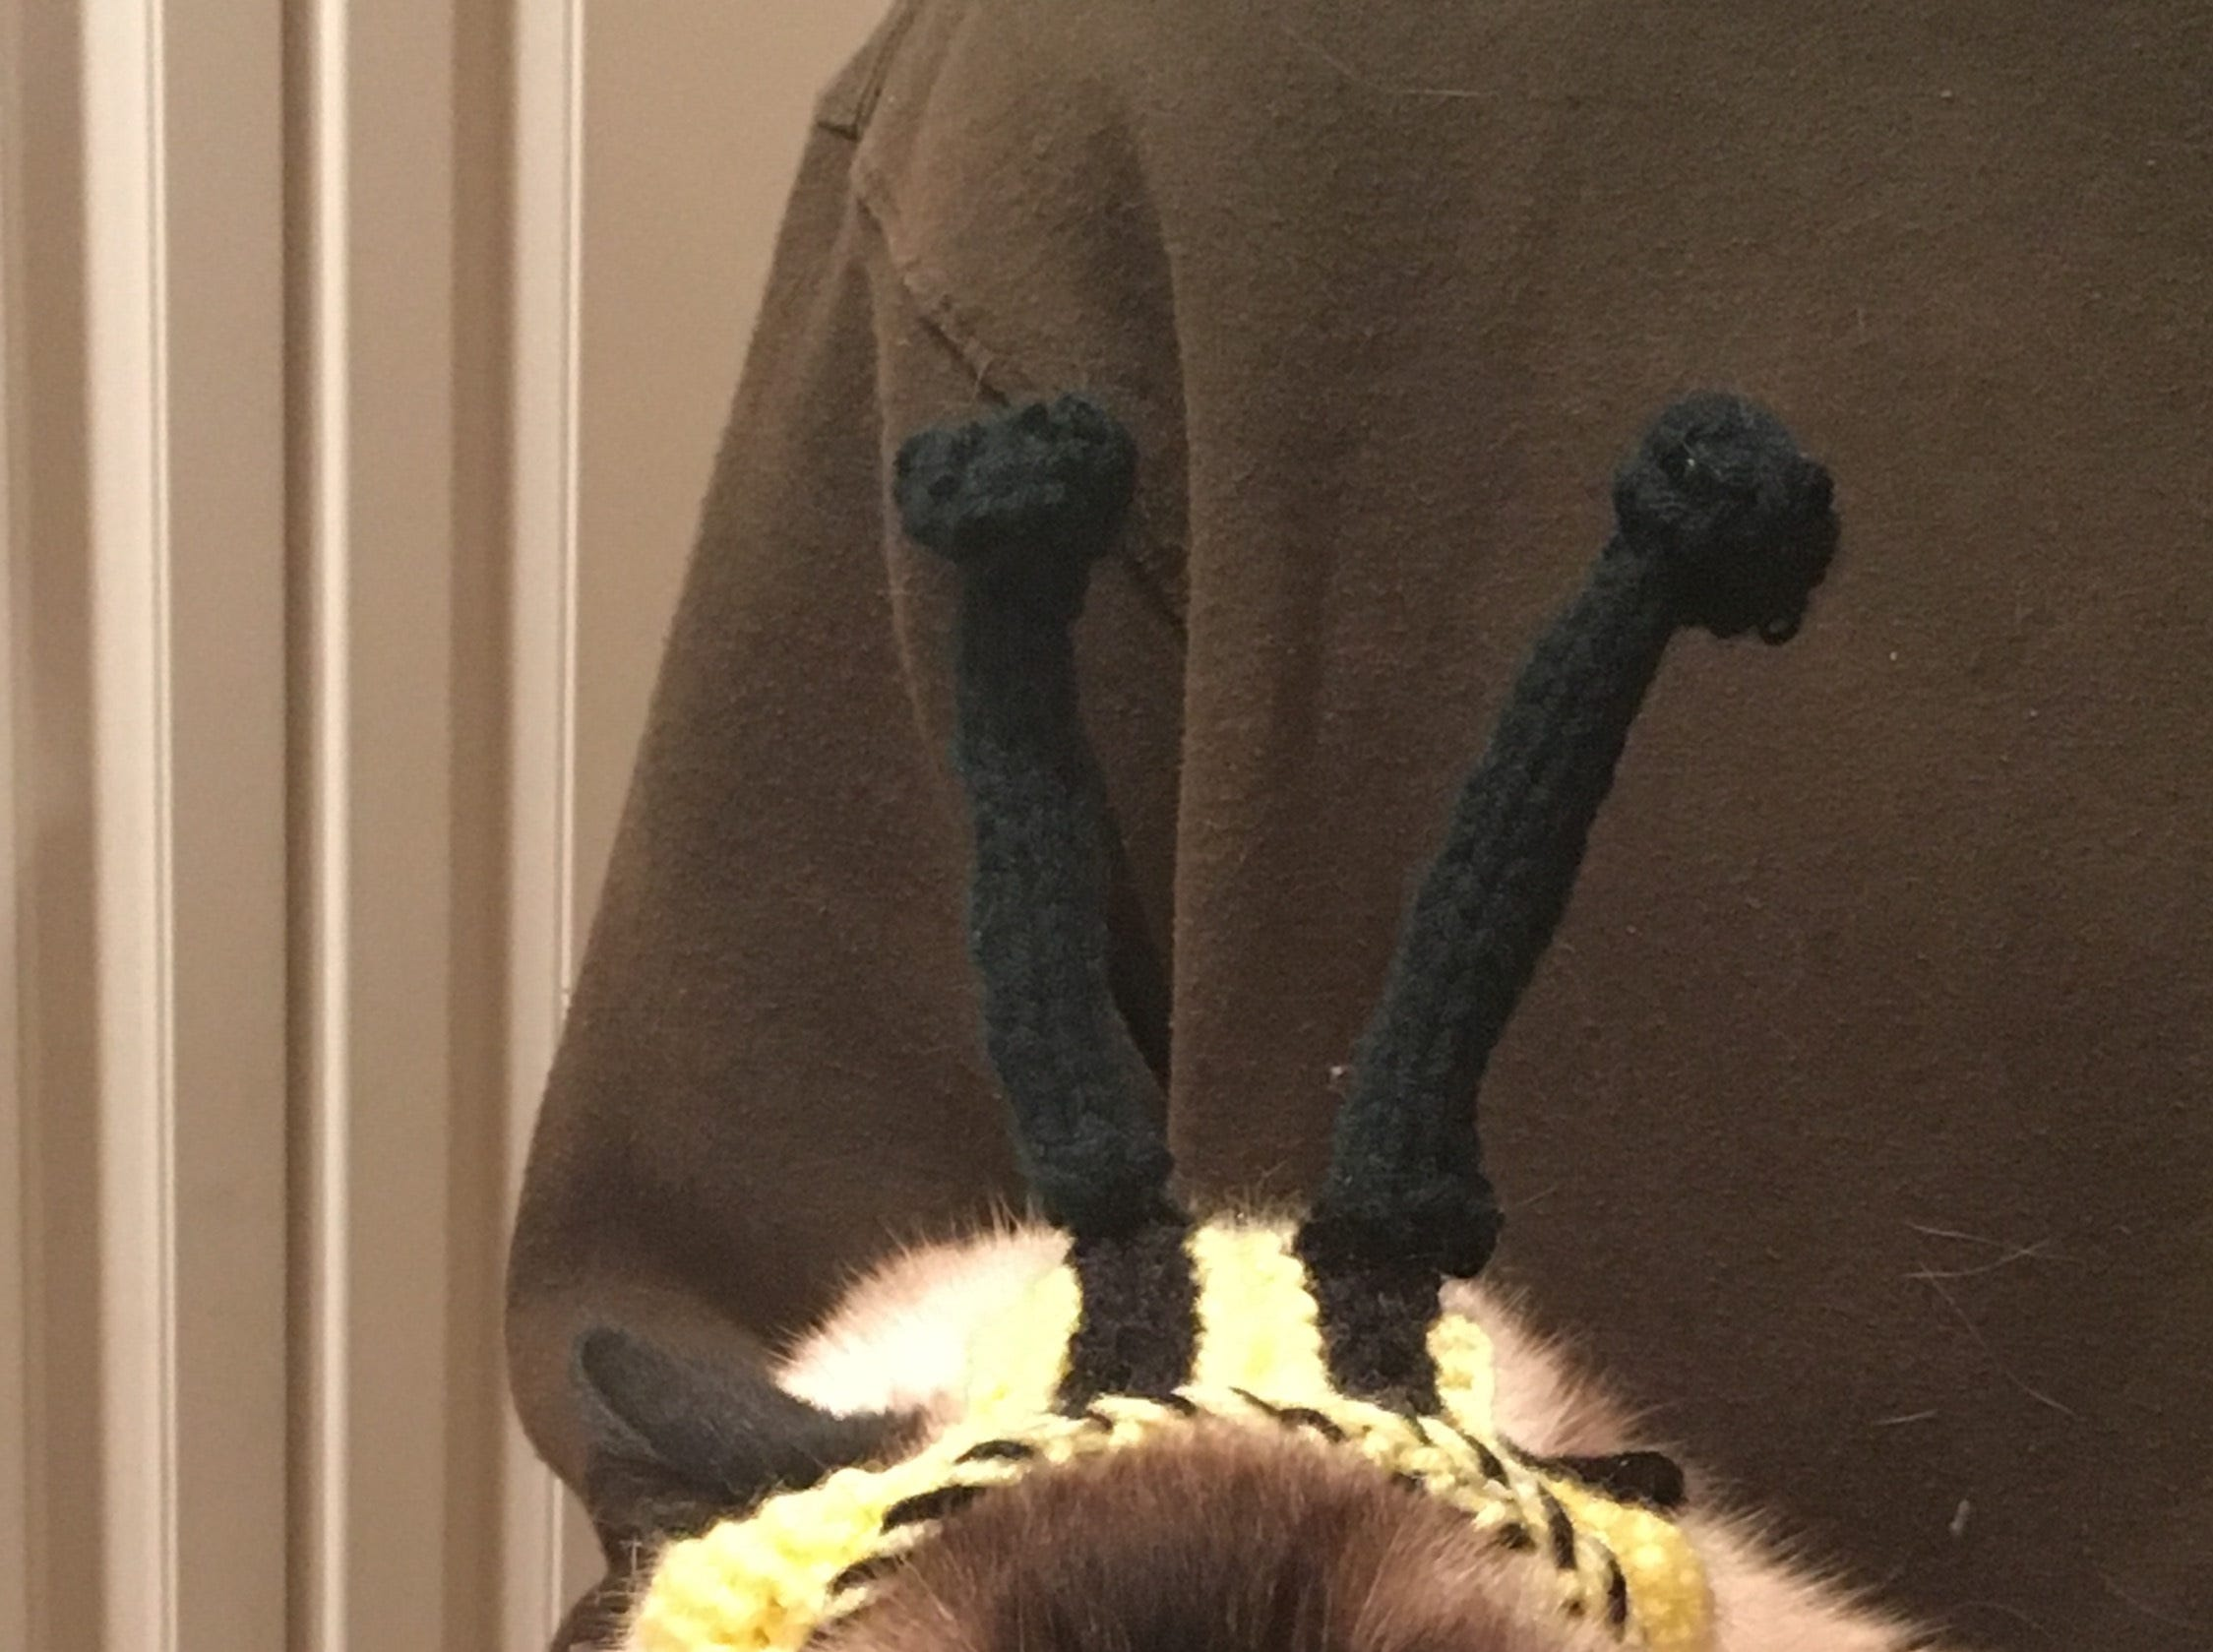 """Jennie Gresham knits """"Cat Hats"""" for friends, family and by request, asking only that recipients donate to the Maclean Animal Adoption Center in return.  Owners take photos and send their cats' """"comment"""" on the hat.  Mocha says """"Look at me. Do I really need to comment?!?!"""""""